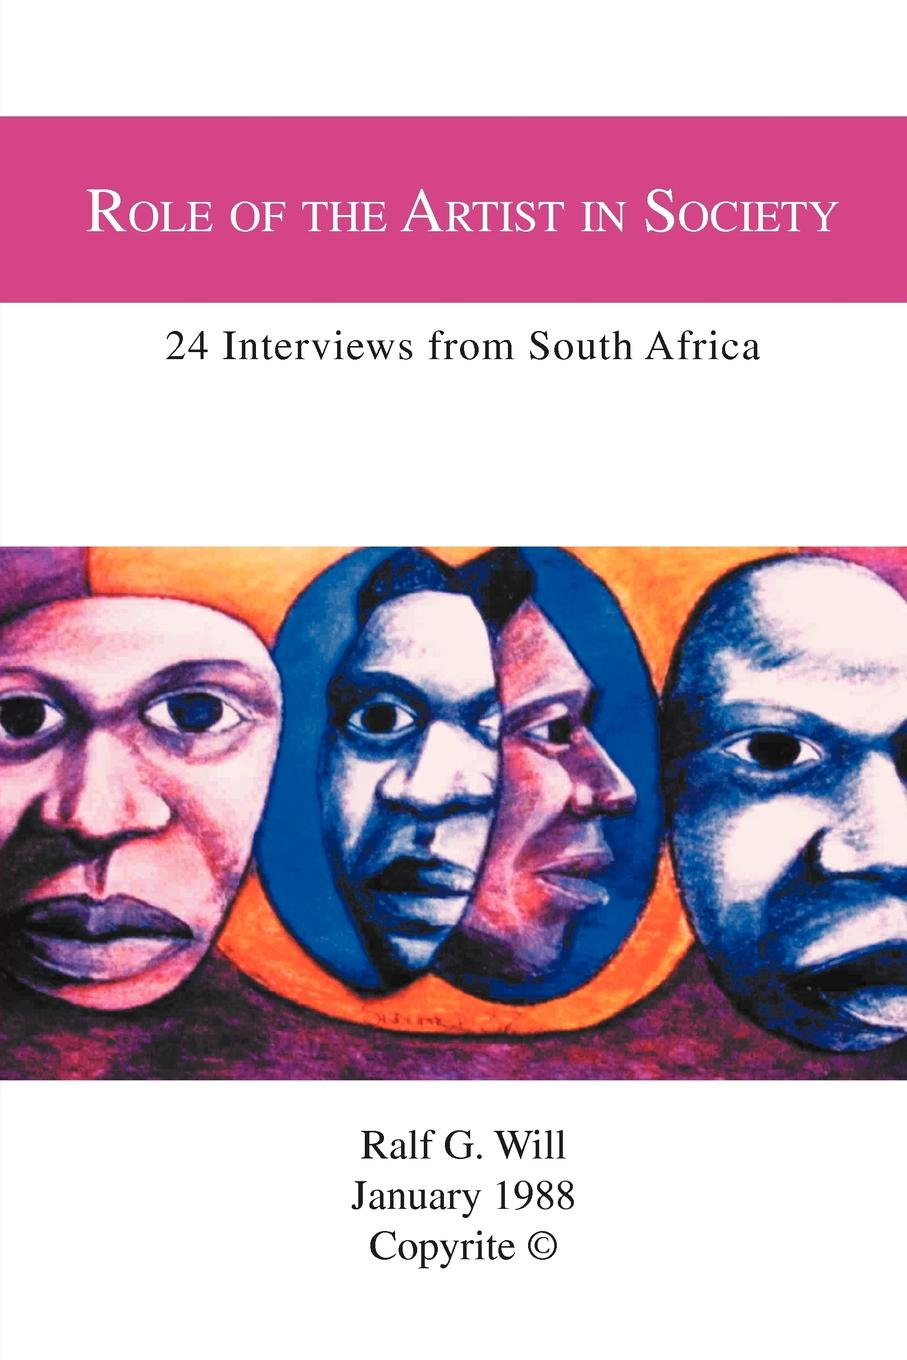 Ralf G. Will Role of the Artist in Society. 24 Interviews from South Africa